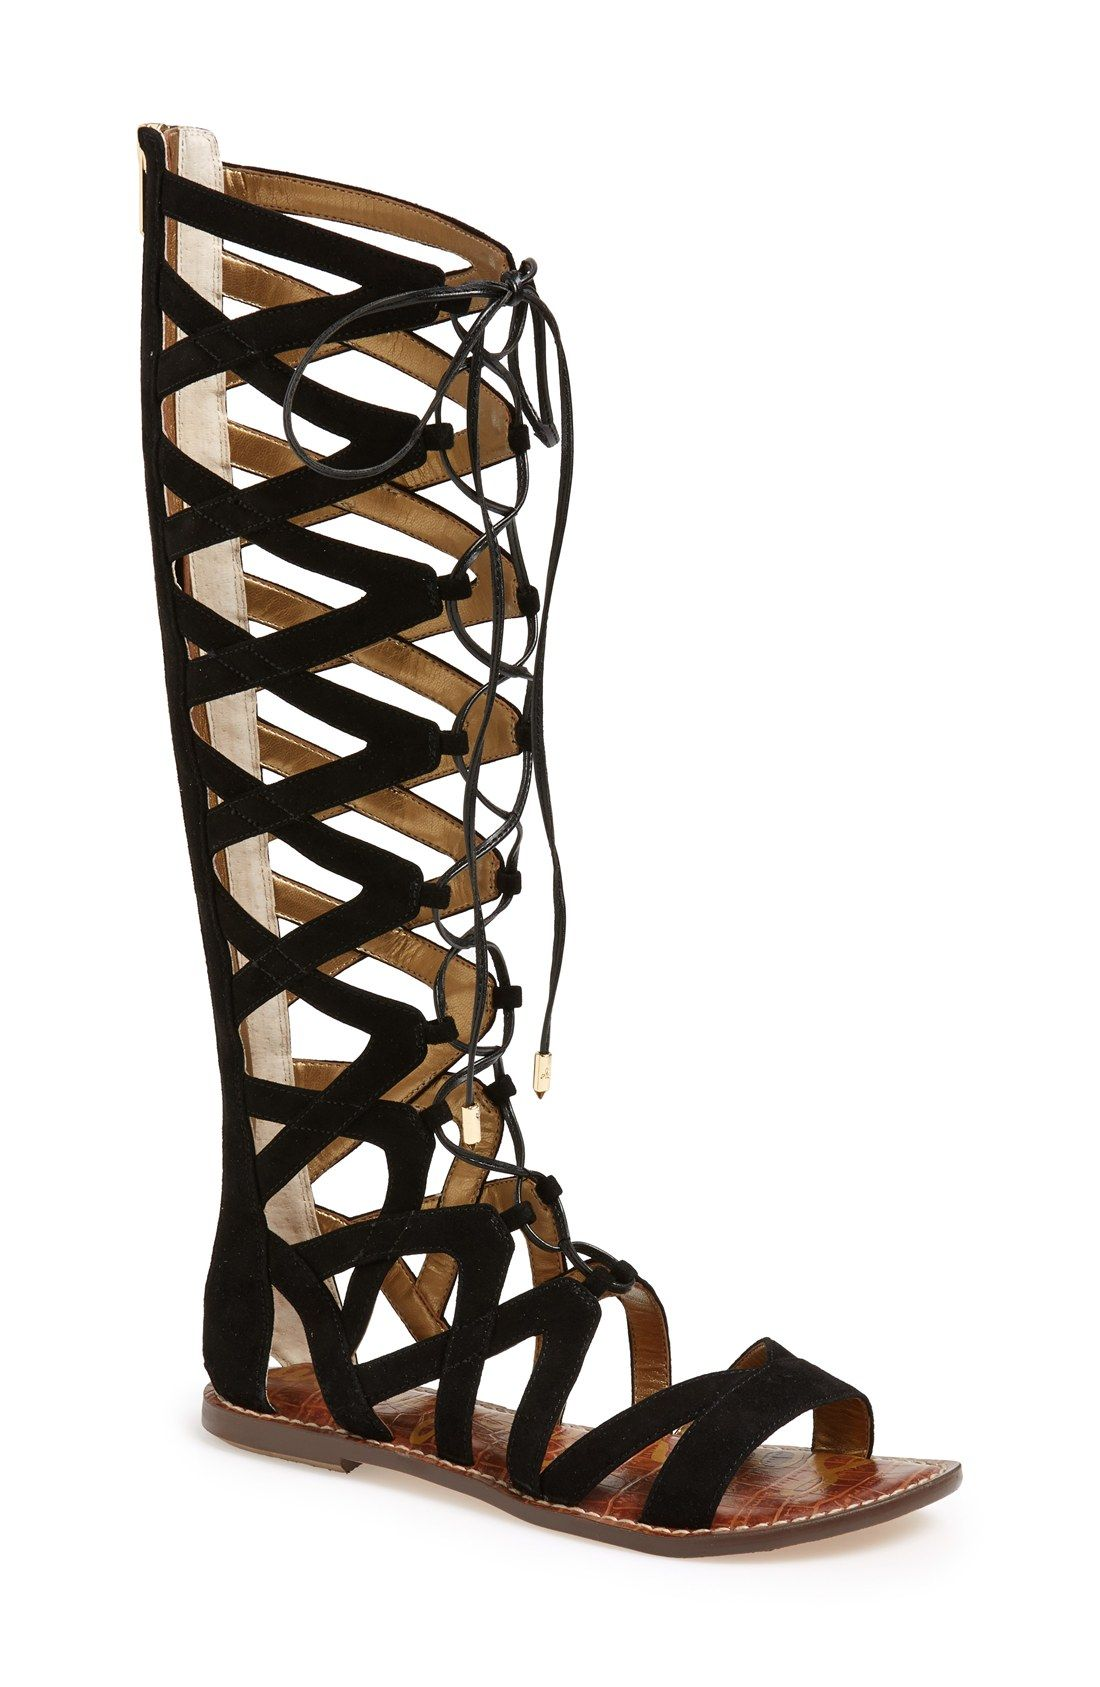 These cool and trendy gladiator sandals grab attention with its sleek black suede straps that extend knee-high.